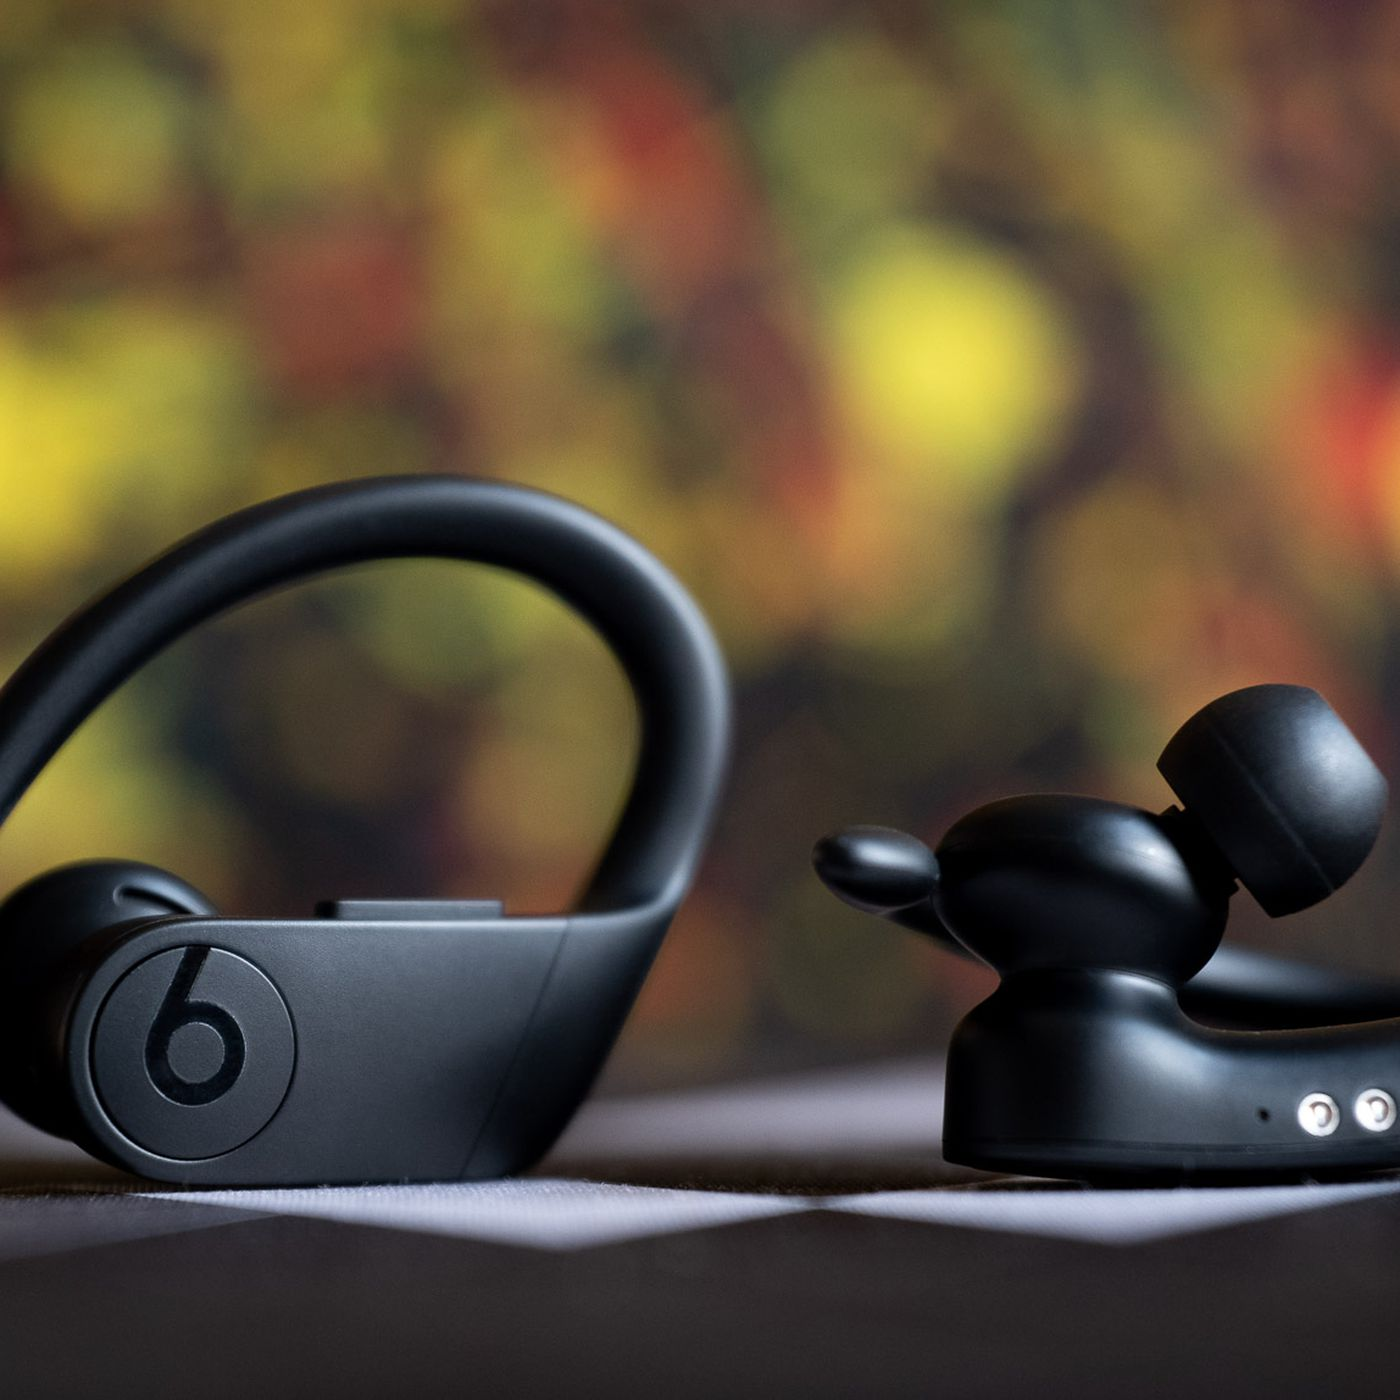 An Overview of the Beats Pro Wireless Headphones